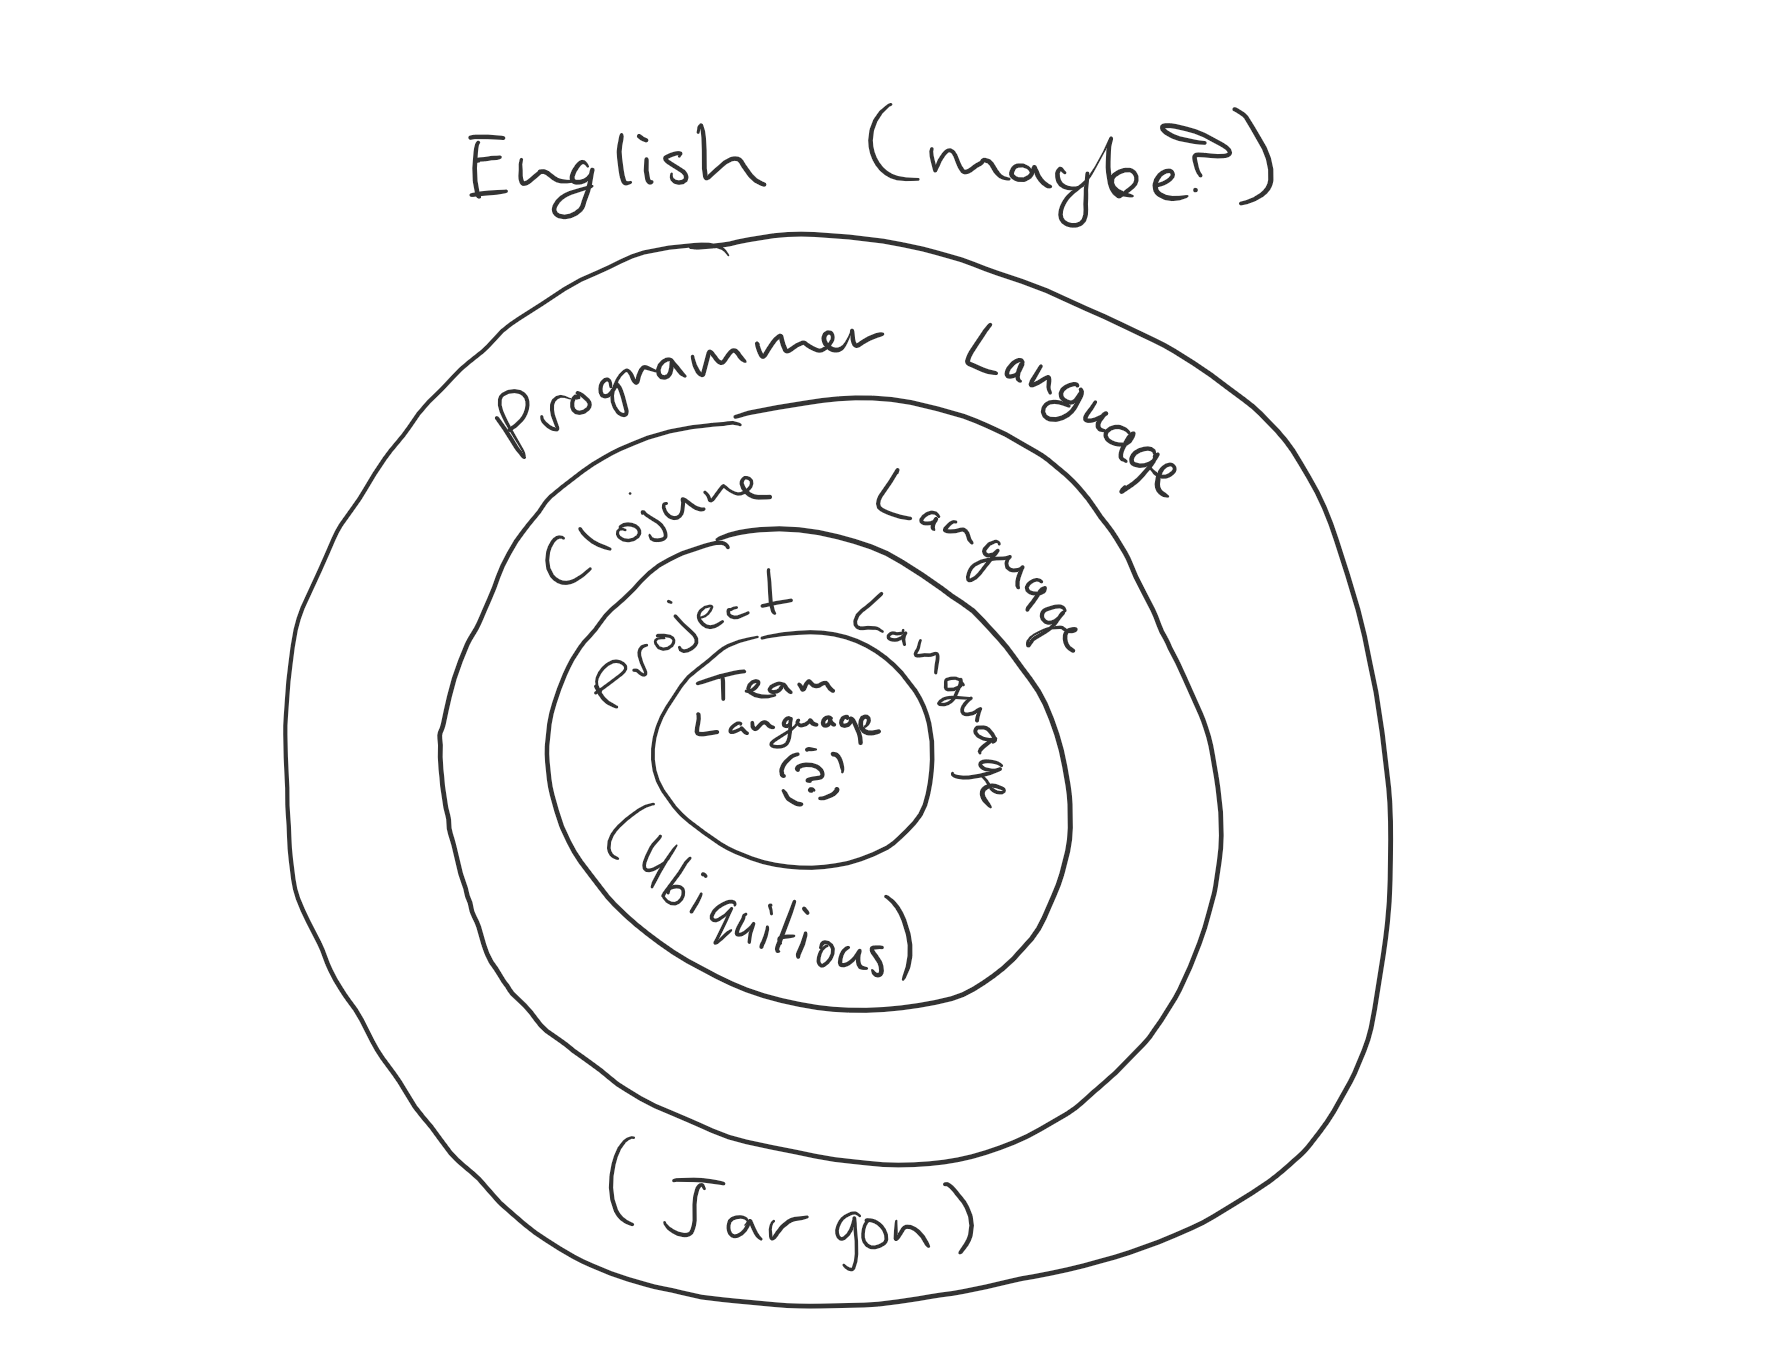 An onion-like image of the layers of language